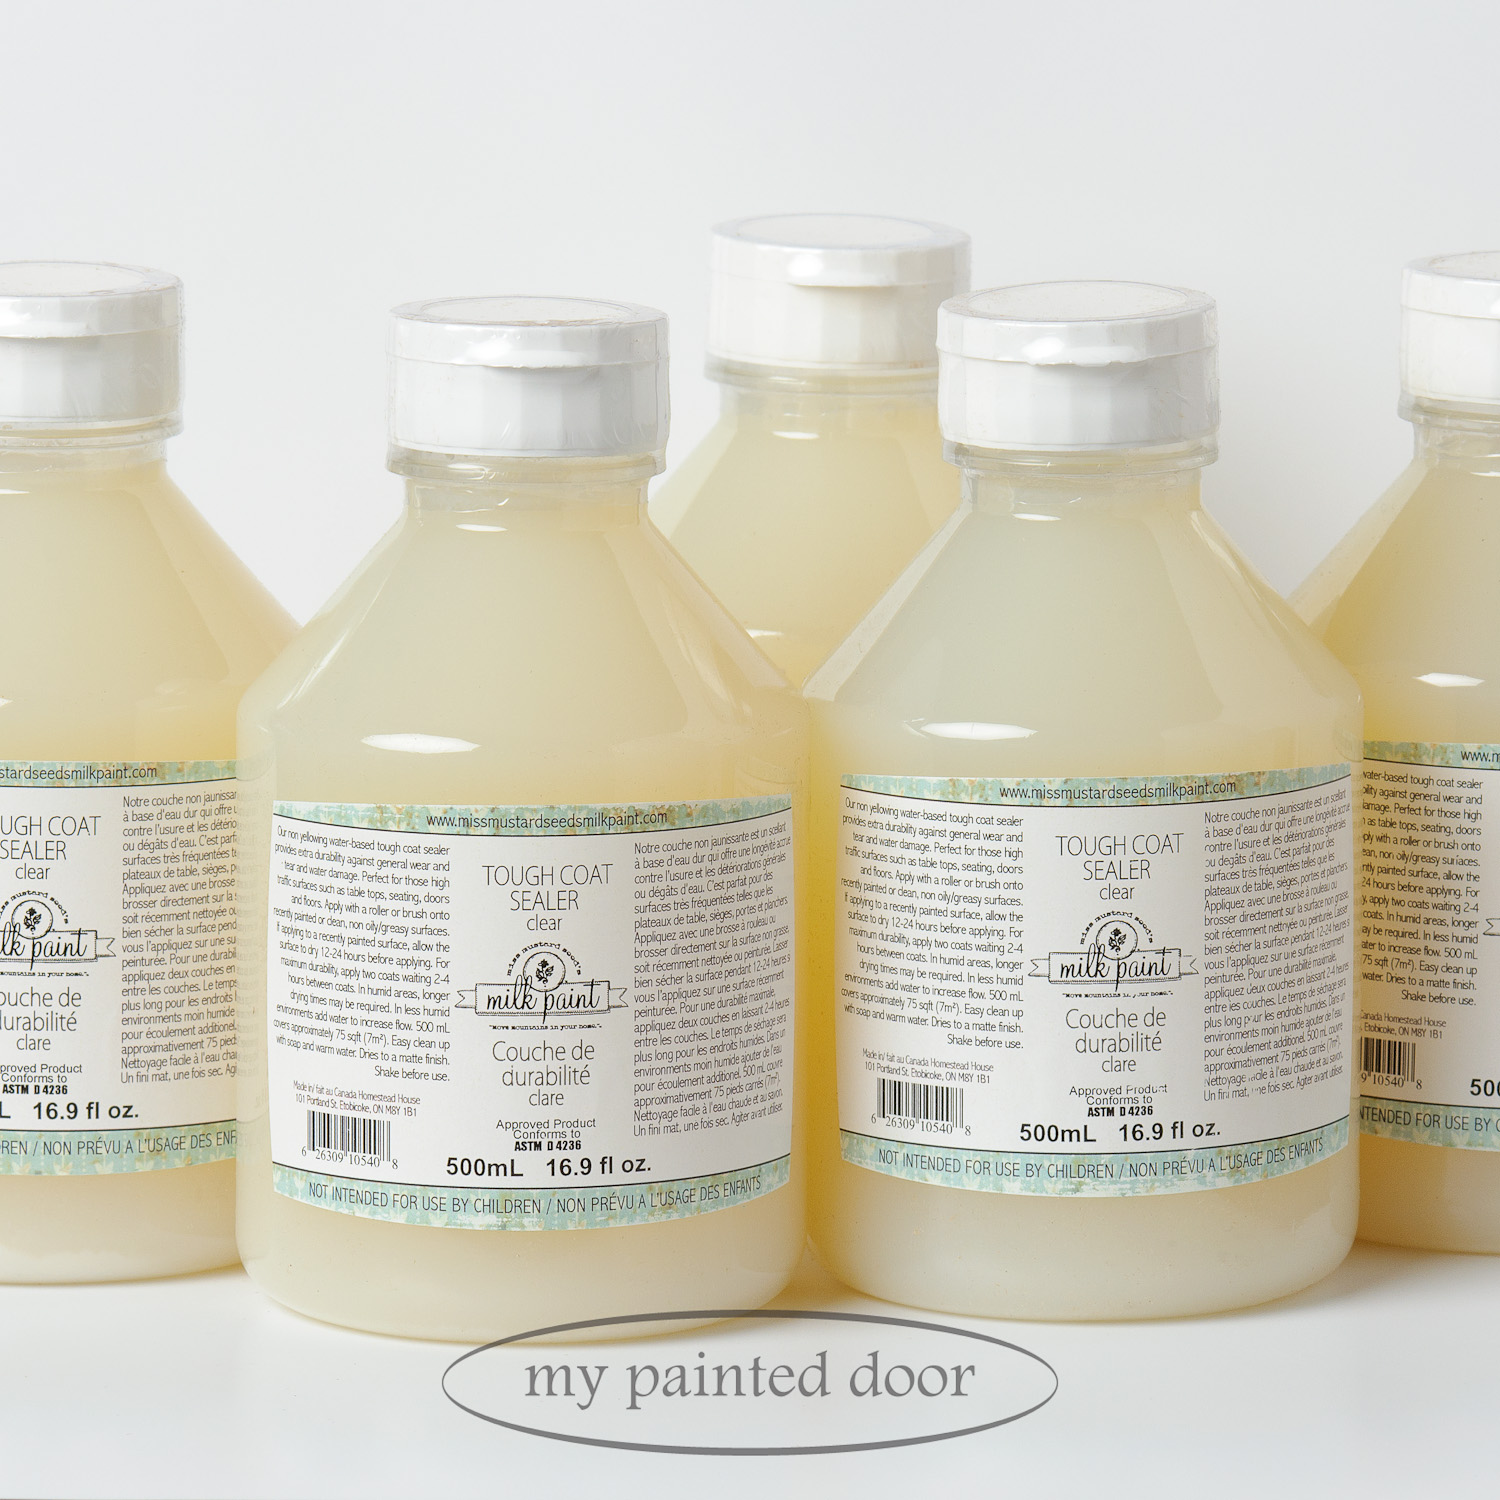 Miss Mustard Seed's tough coat sealer - available at My Painted Door (.com)